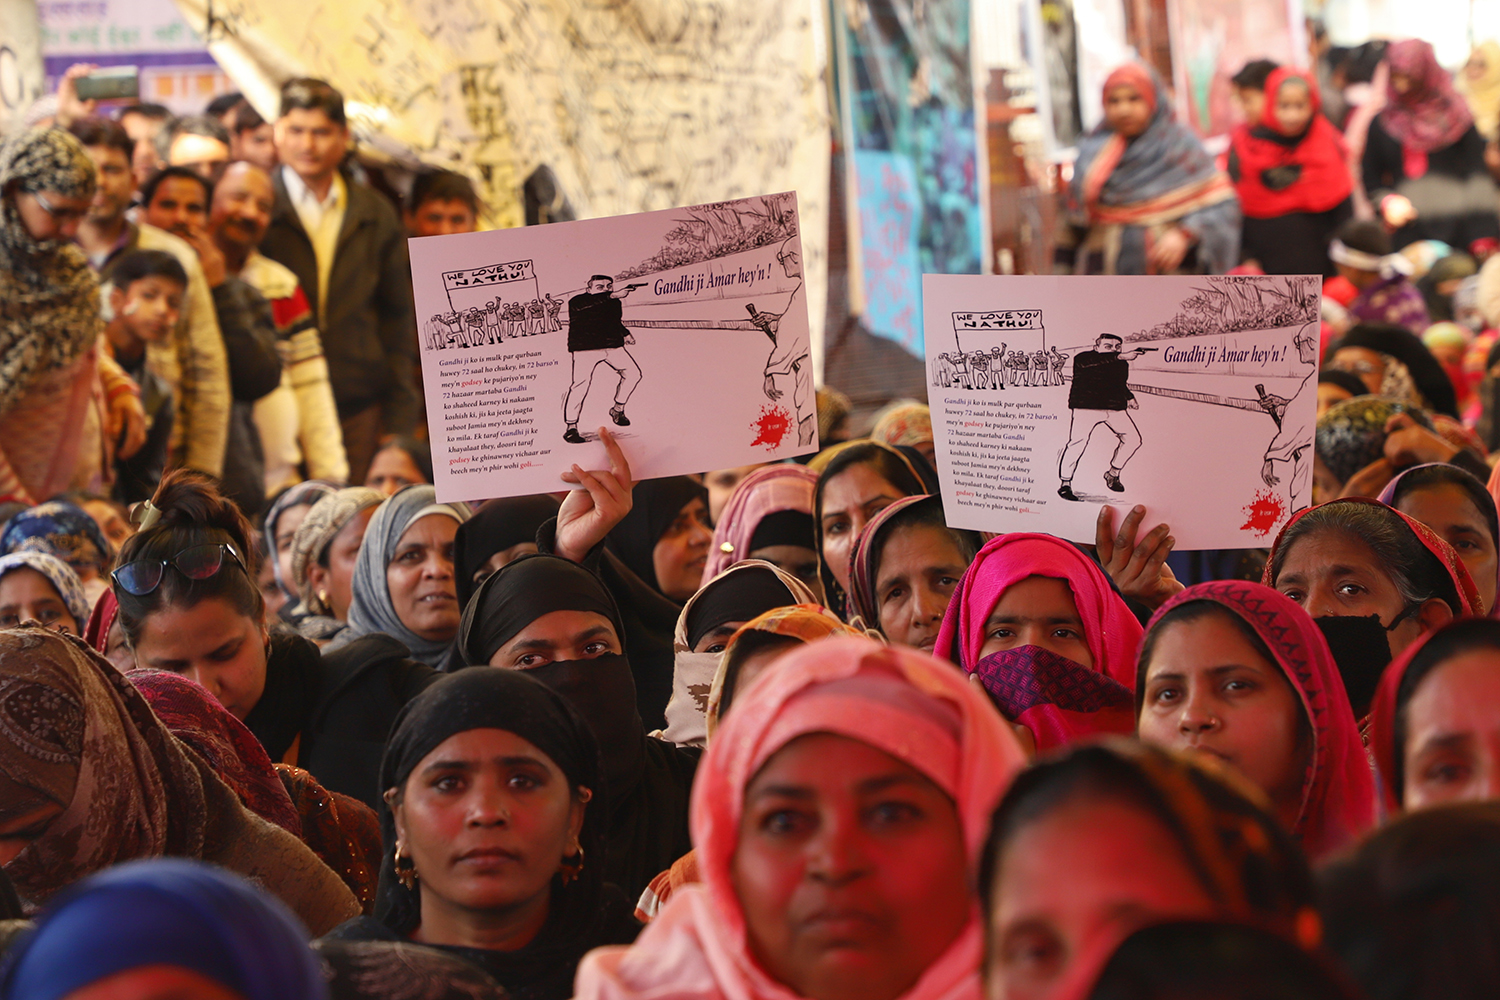 People take part in protests against the Citizenship Amendment Act and the National Register of Citizens at Shaheen Bagh in New Delhi, on Feb. 2, the day after a shooter fired on protesters there.